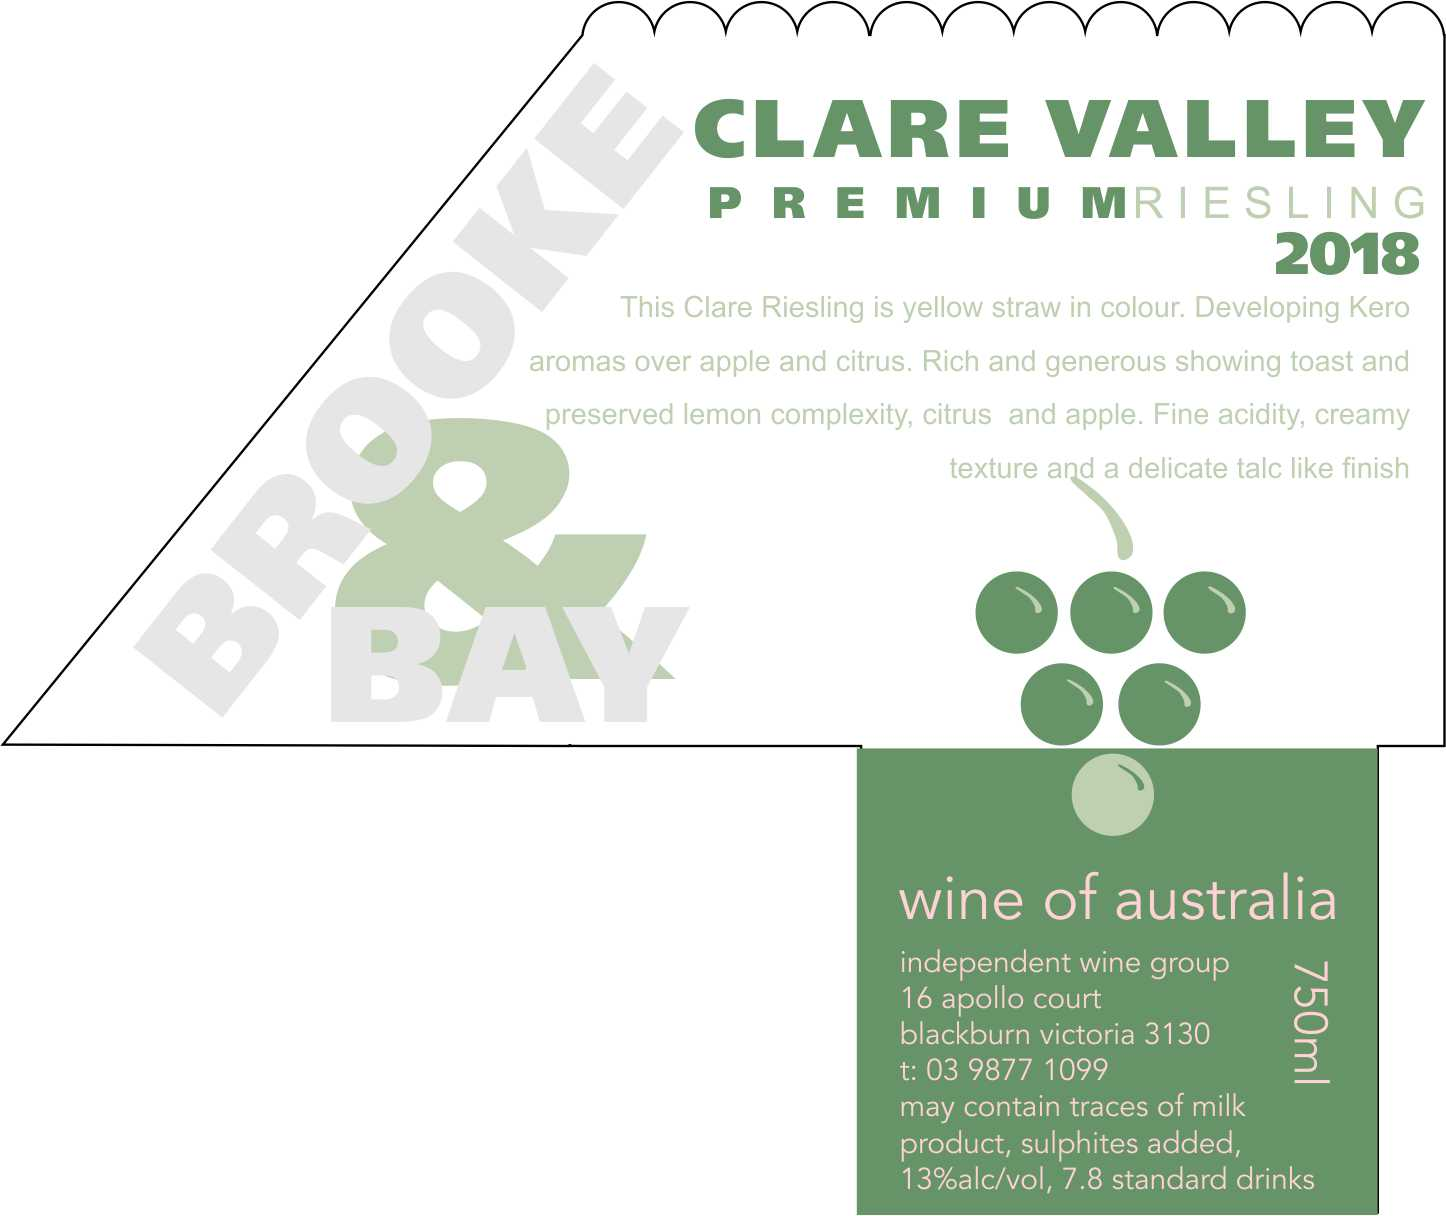 CLARE VALLEY PREMIUM RIESLING